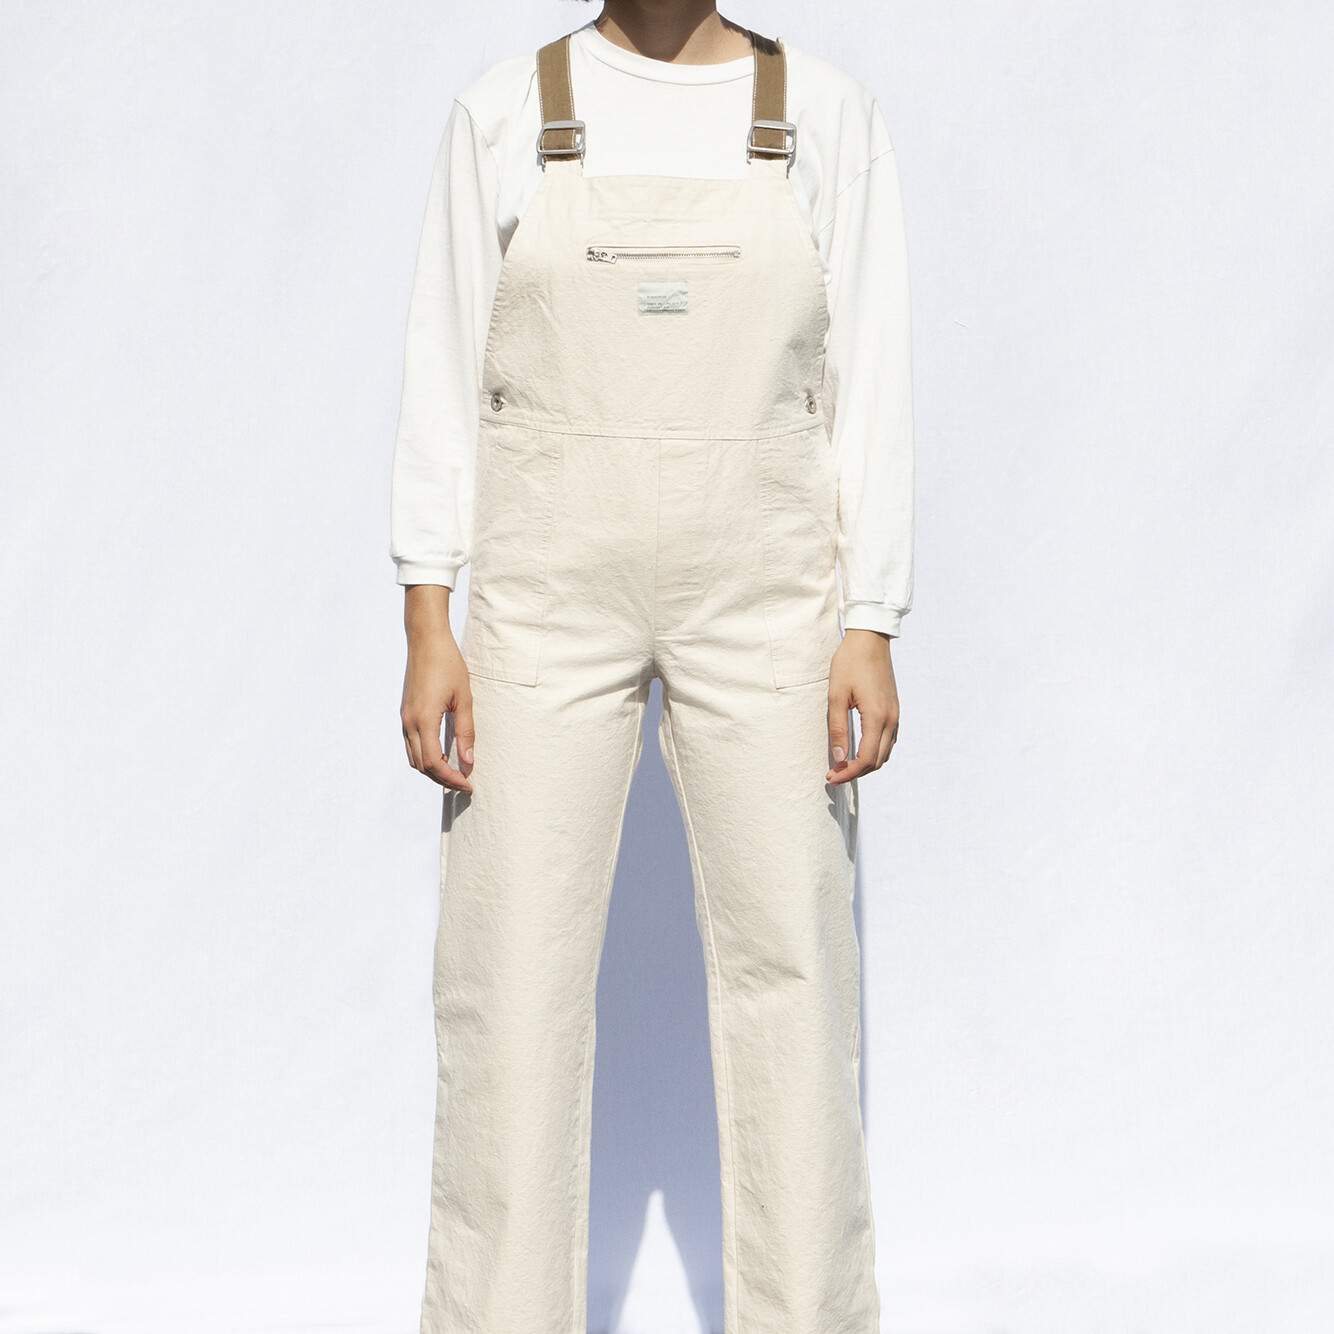 W'MENSWEAR RESEARCH DUNGAREE IN VINTAGE CANVAS